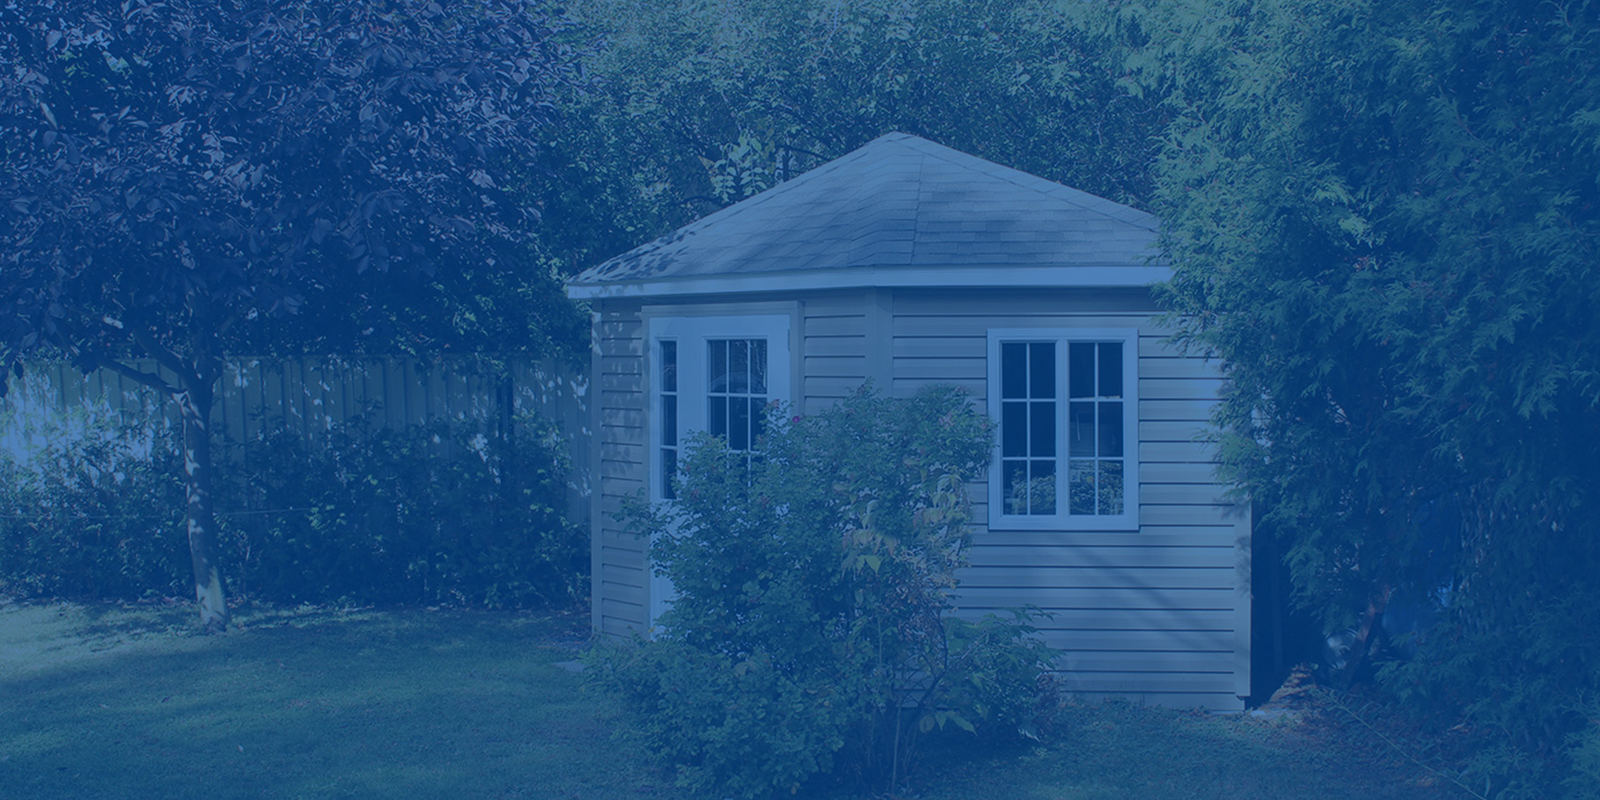 Cabanons Riopel, we have a shed created especially to fulfill your needs.